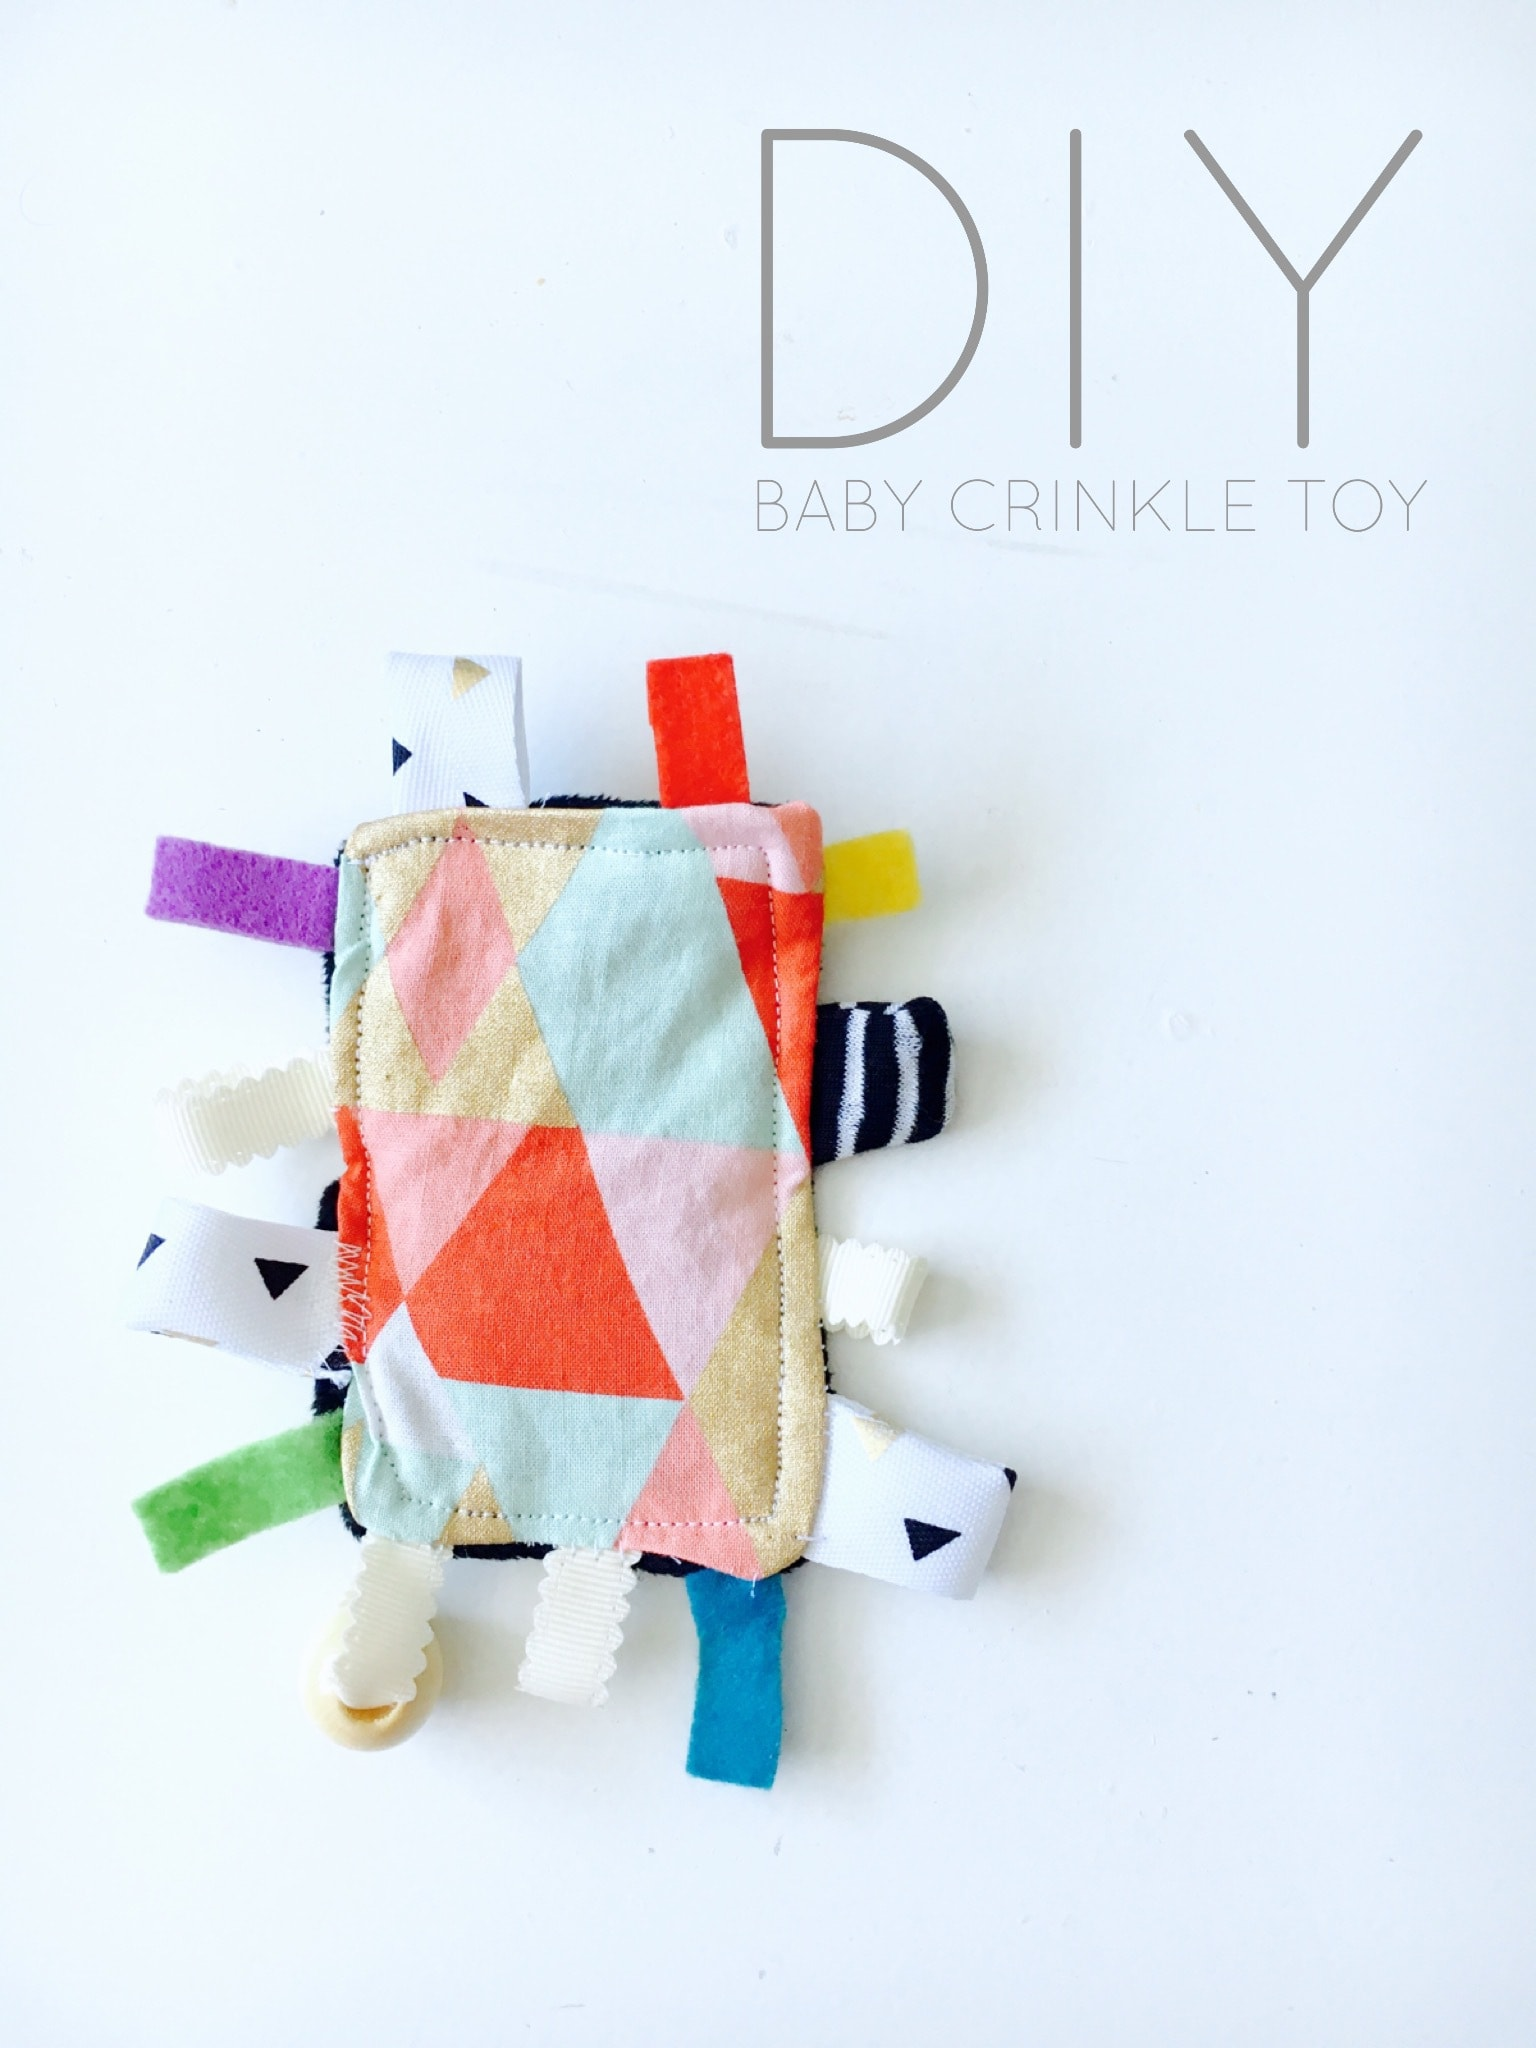 DIY Baby Crinkle Toy